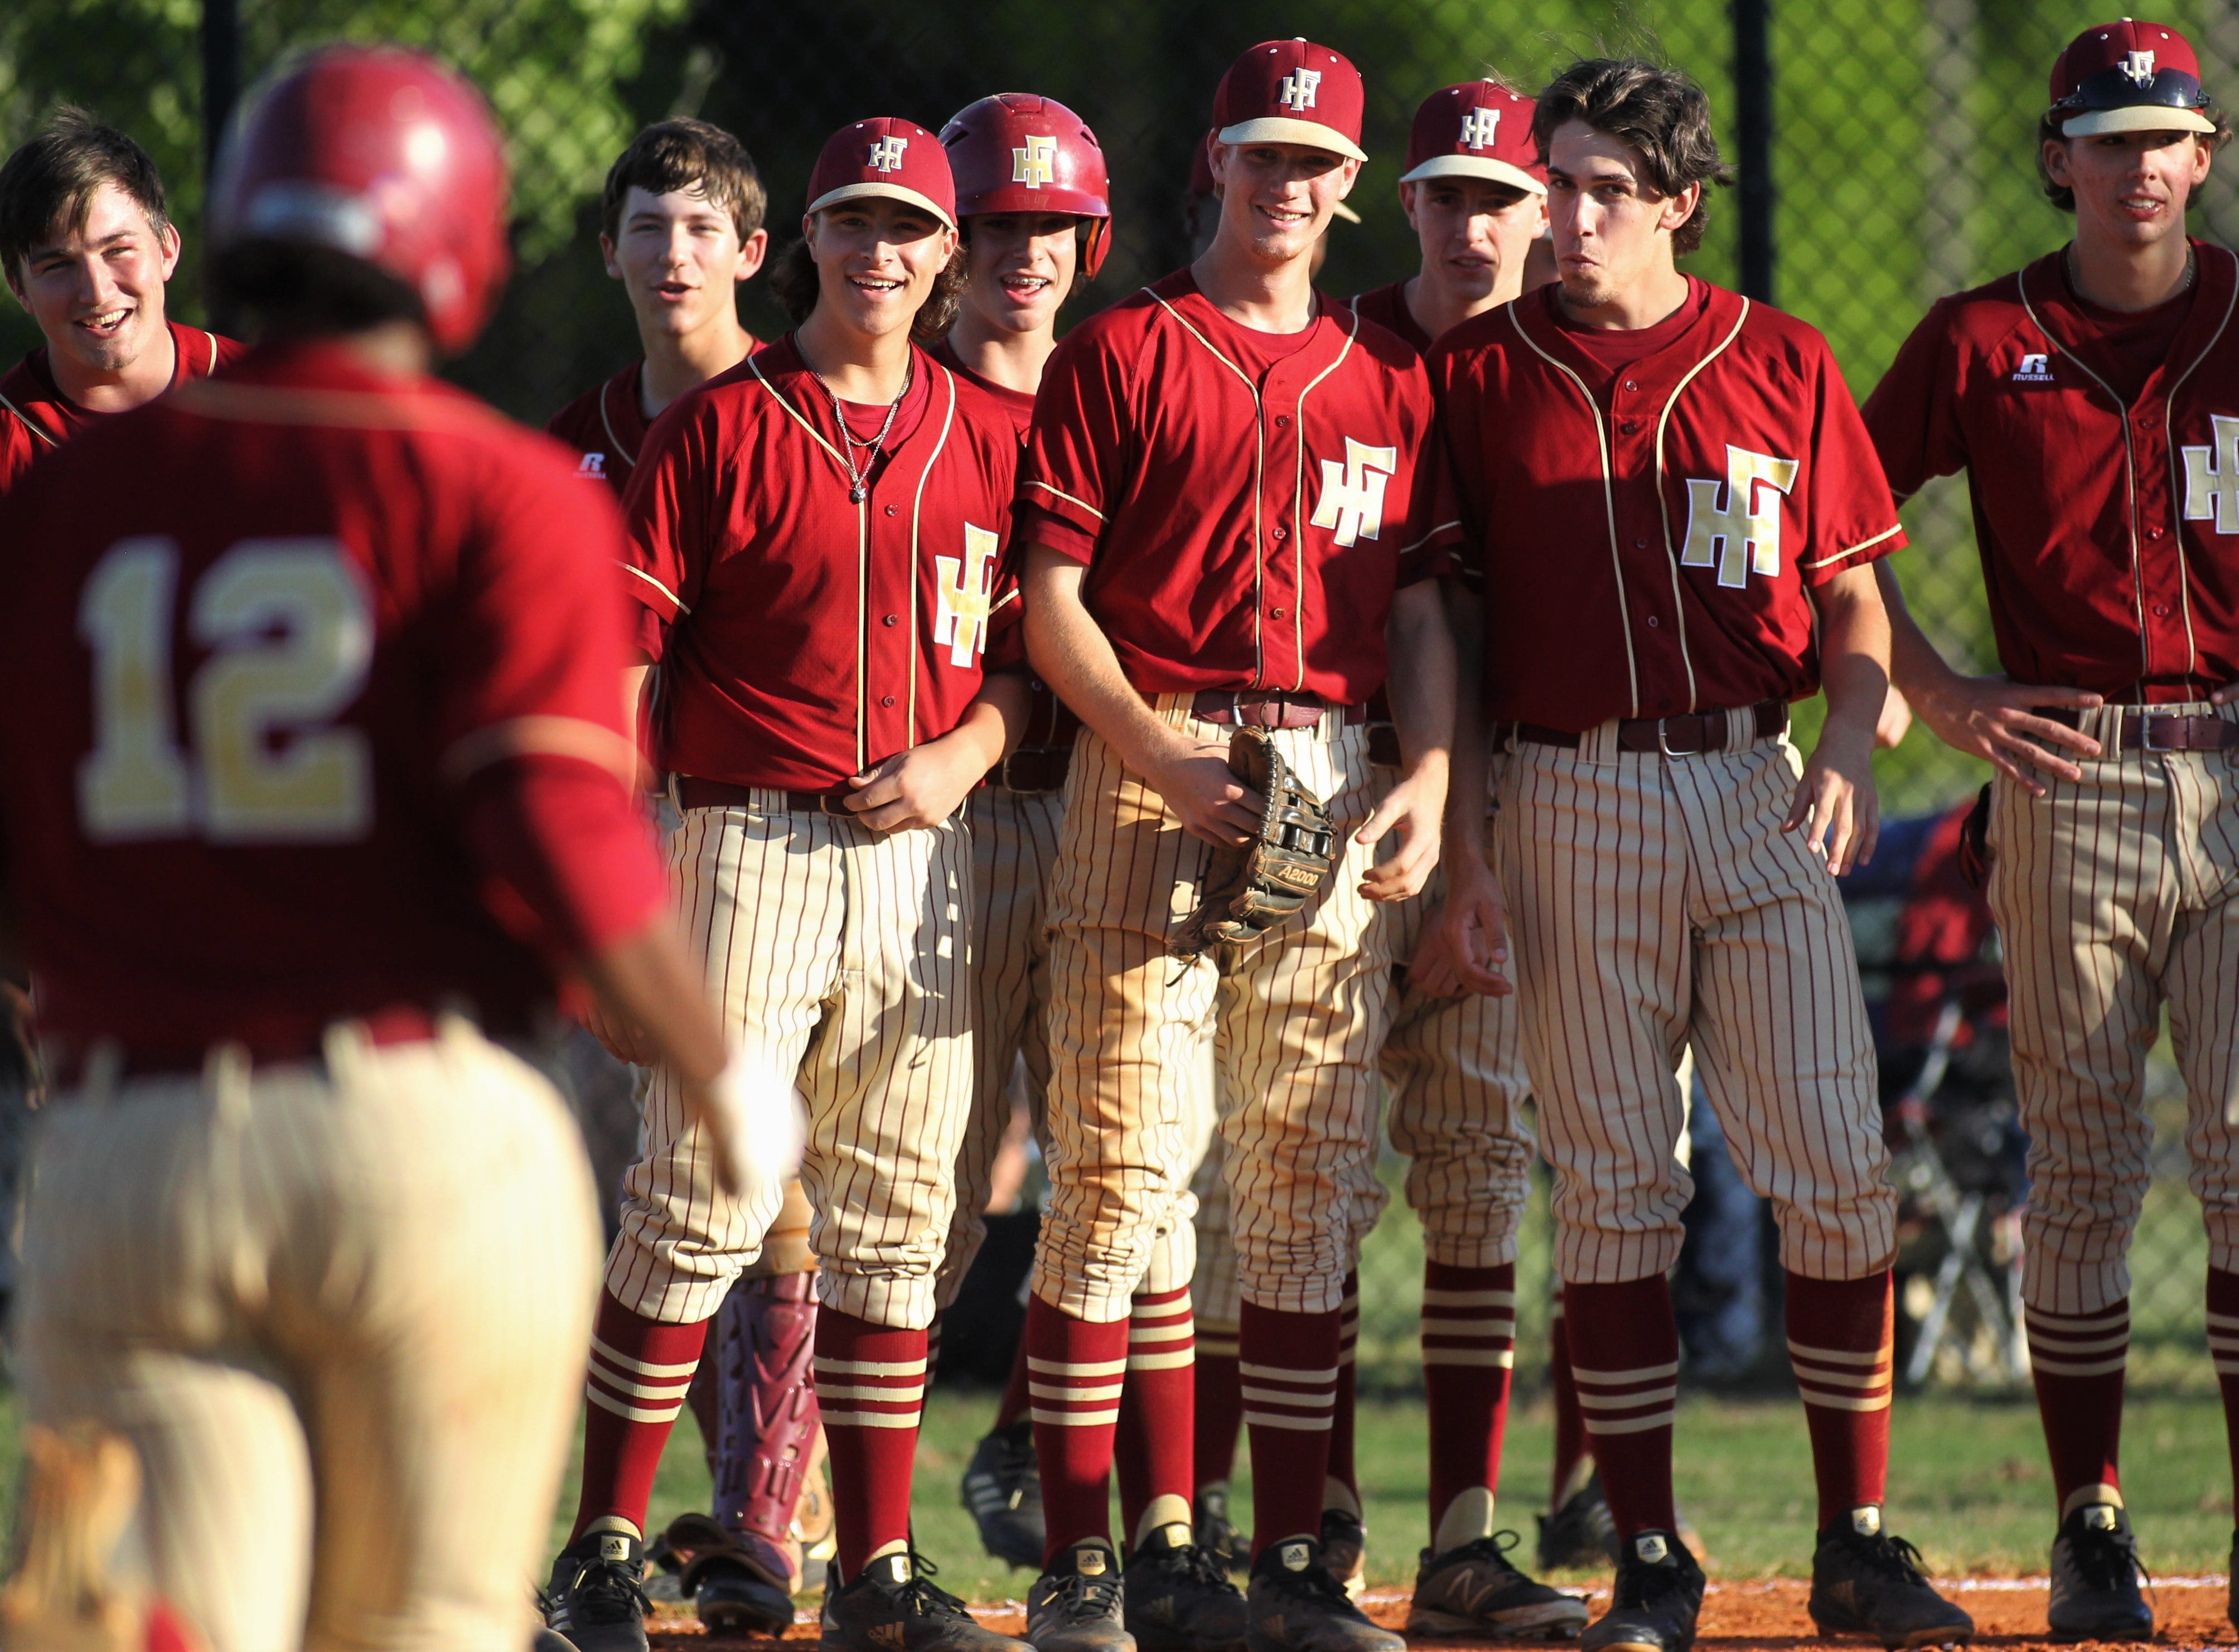 Florida High's baseball team waits to greet Malachi Burke after a home run as Florida High won 11-3 on the road at St. John Paul II on Tuesday, April 3, 2010.